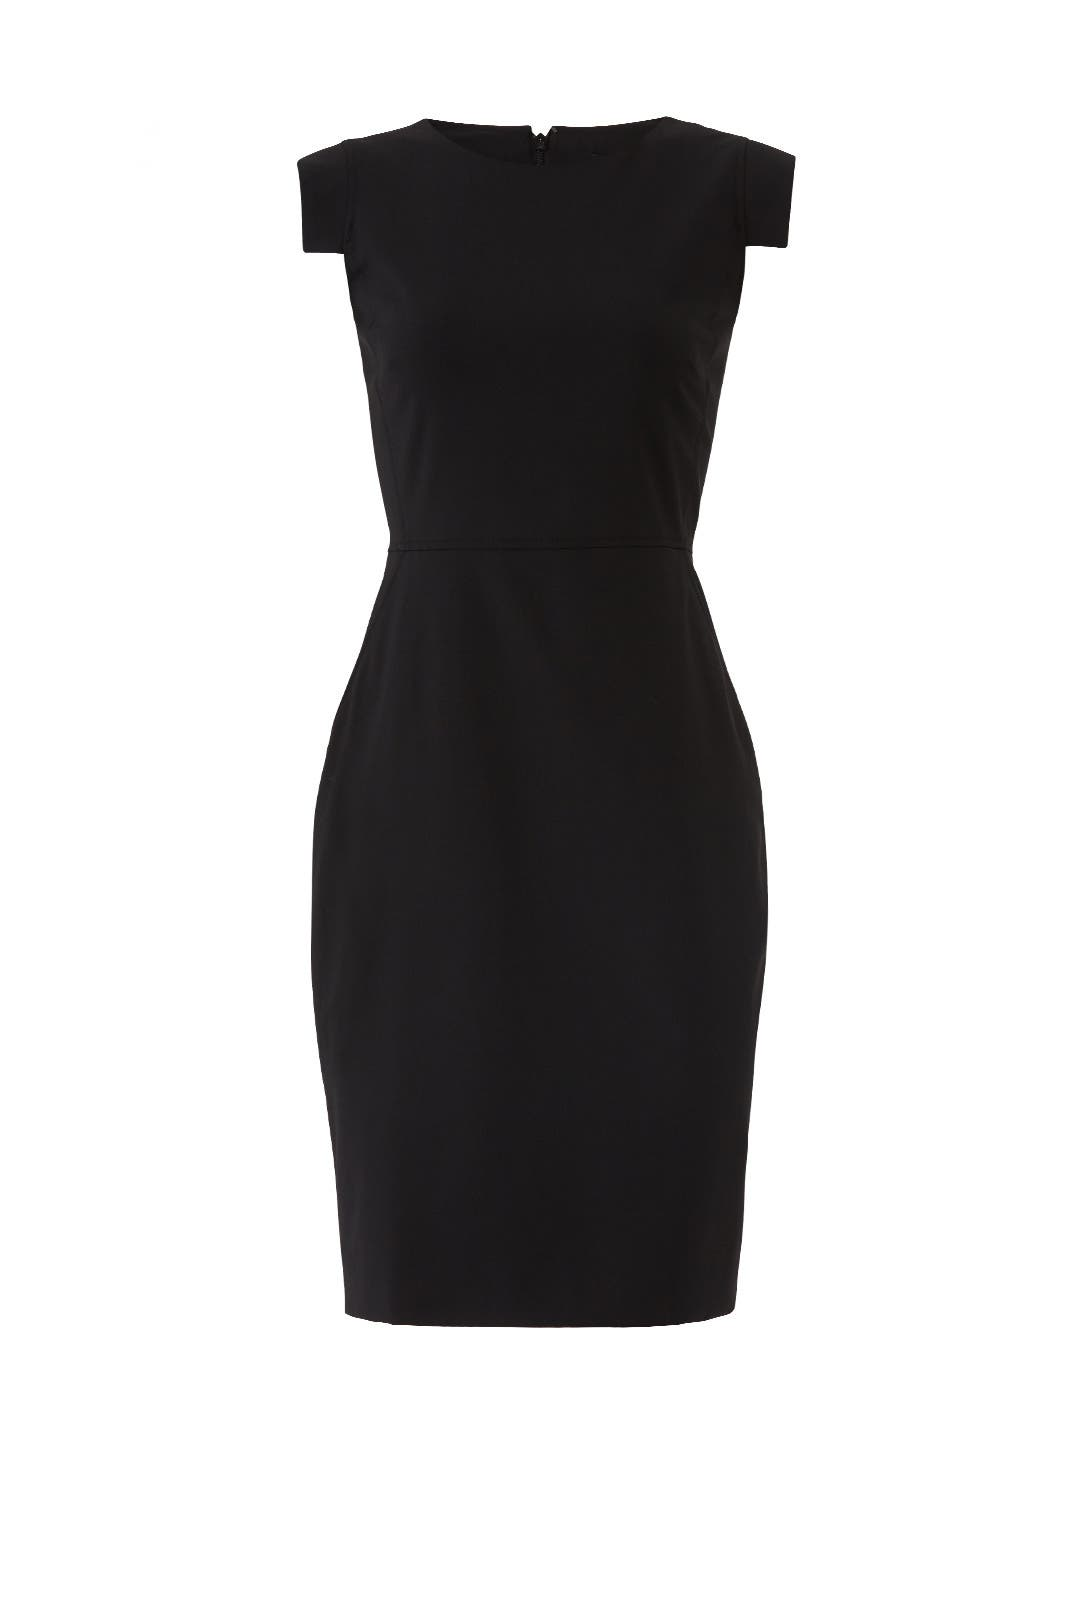 black resume dress by j crew for  35